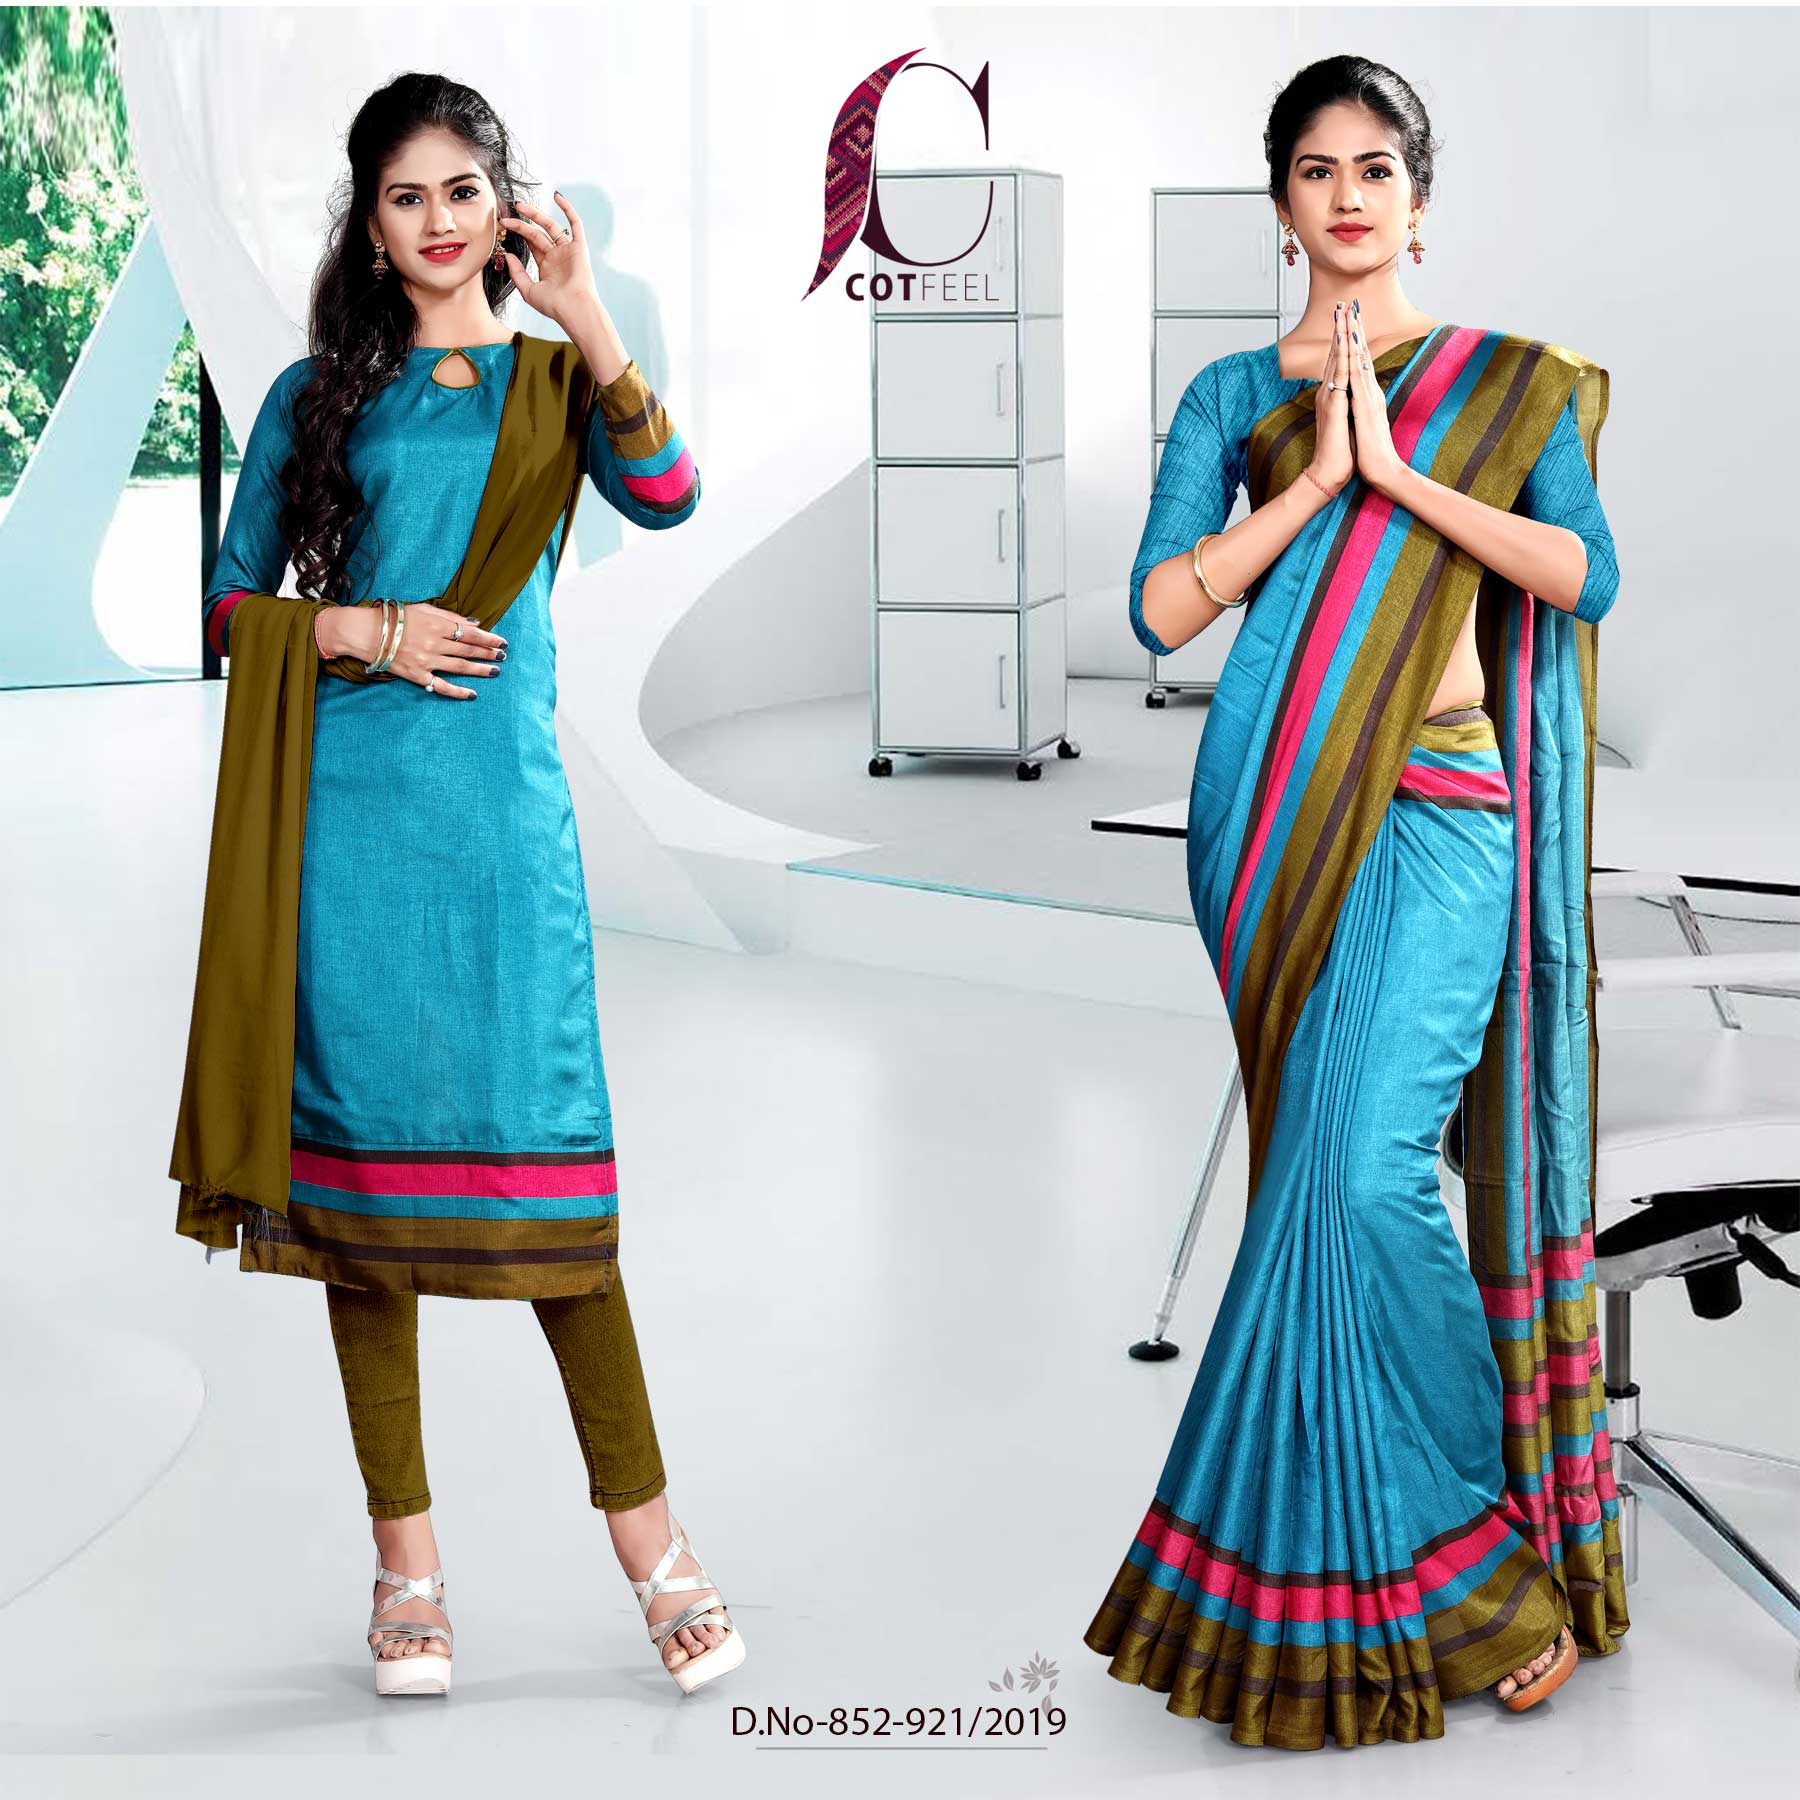 GREEN AND BLUE FANCY CORPORATE UNIFORM SAREE SALWAR COMBO